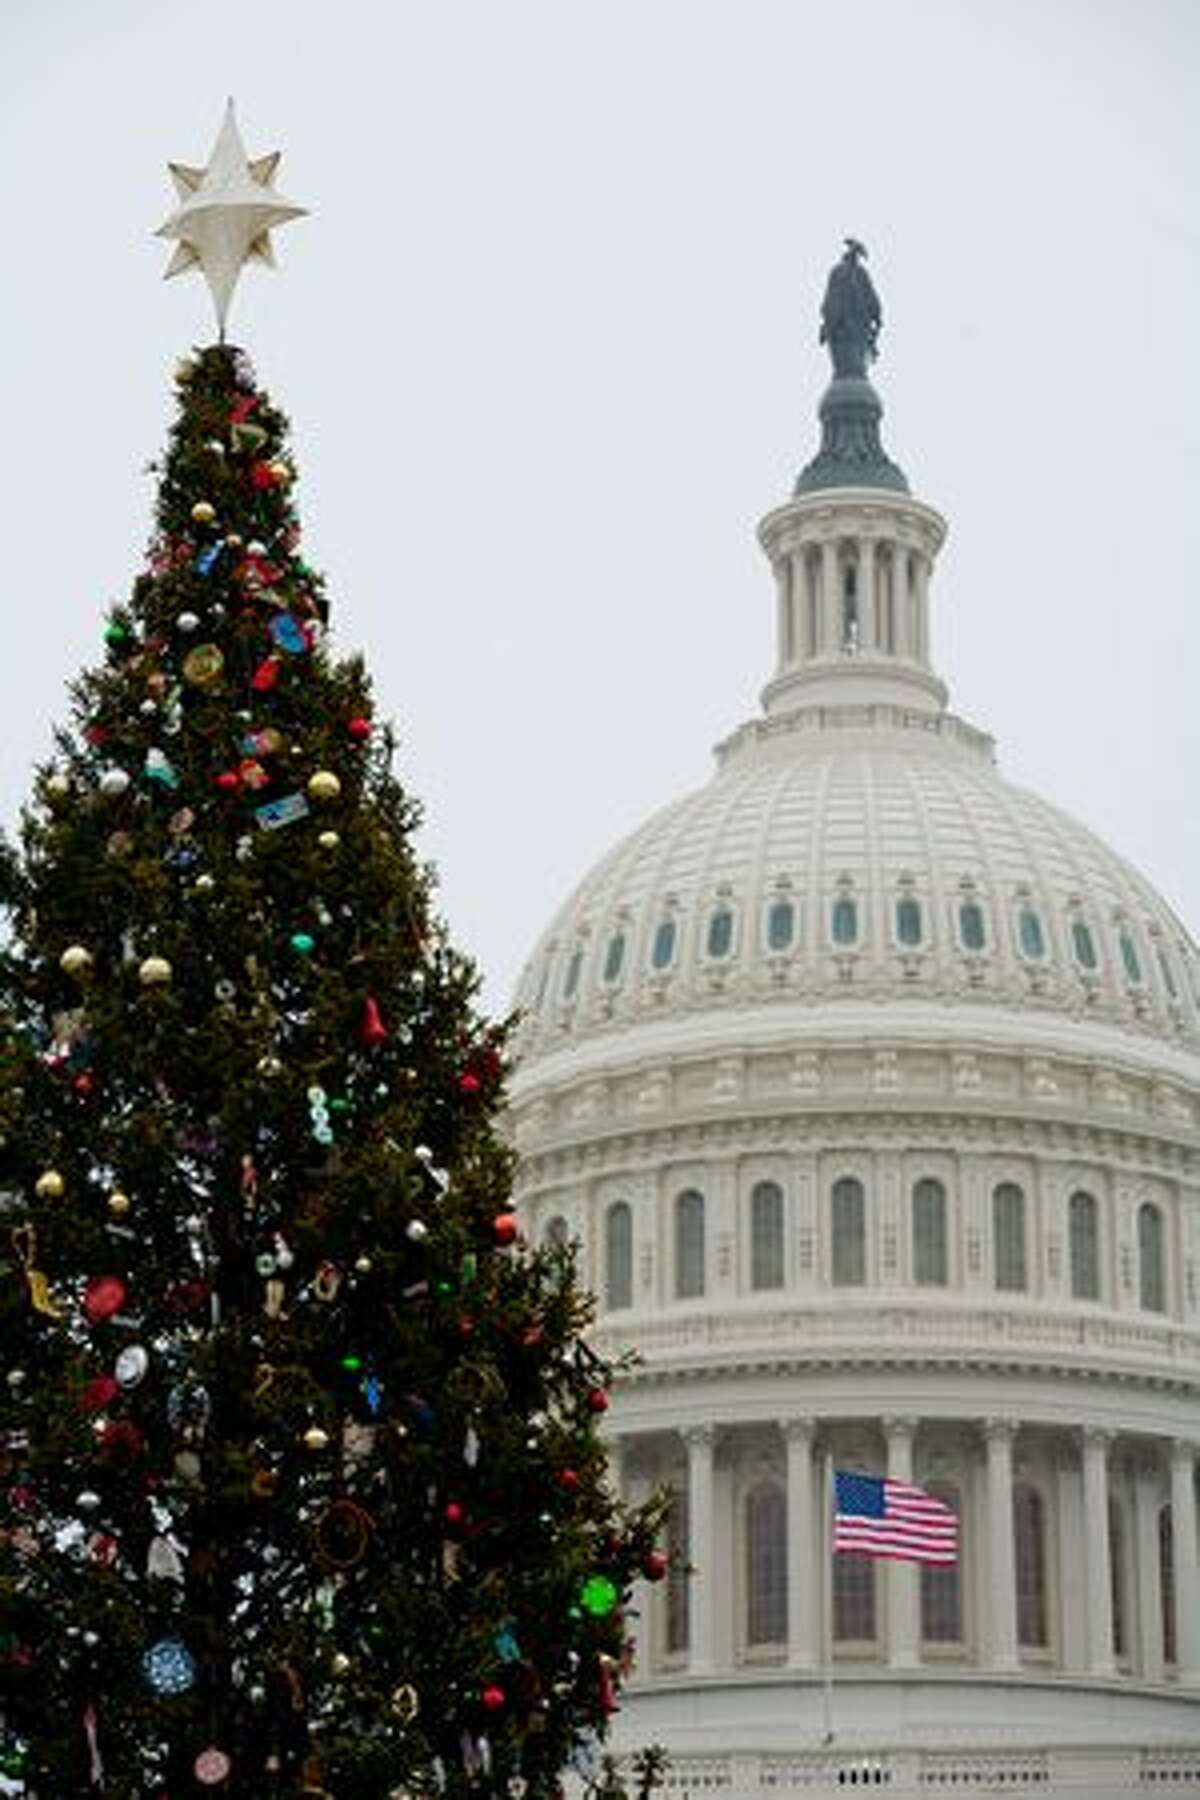 The U.S. Capitol Christmas Tree on in Washington, DC. Initial predictions of heavy snow were downgraded to a dusting as the blizzard passed further to the east.